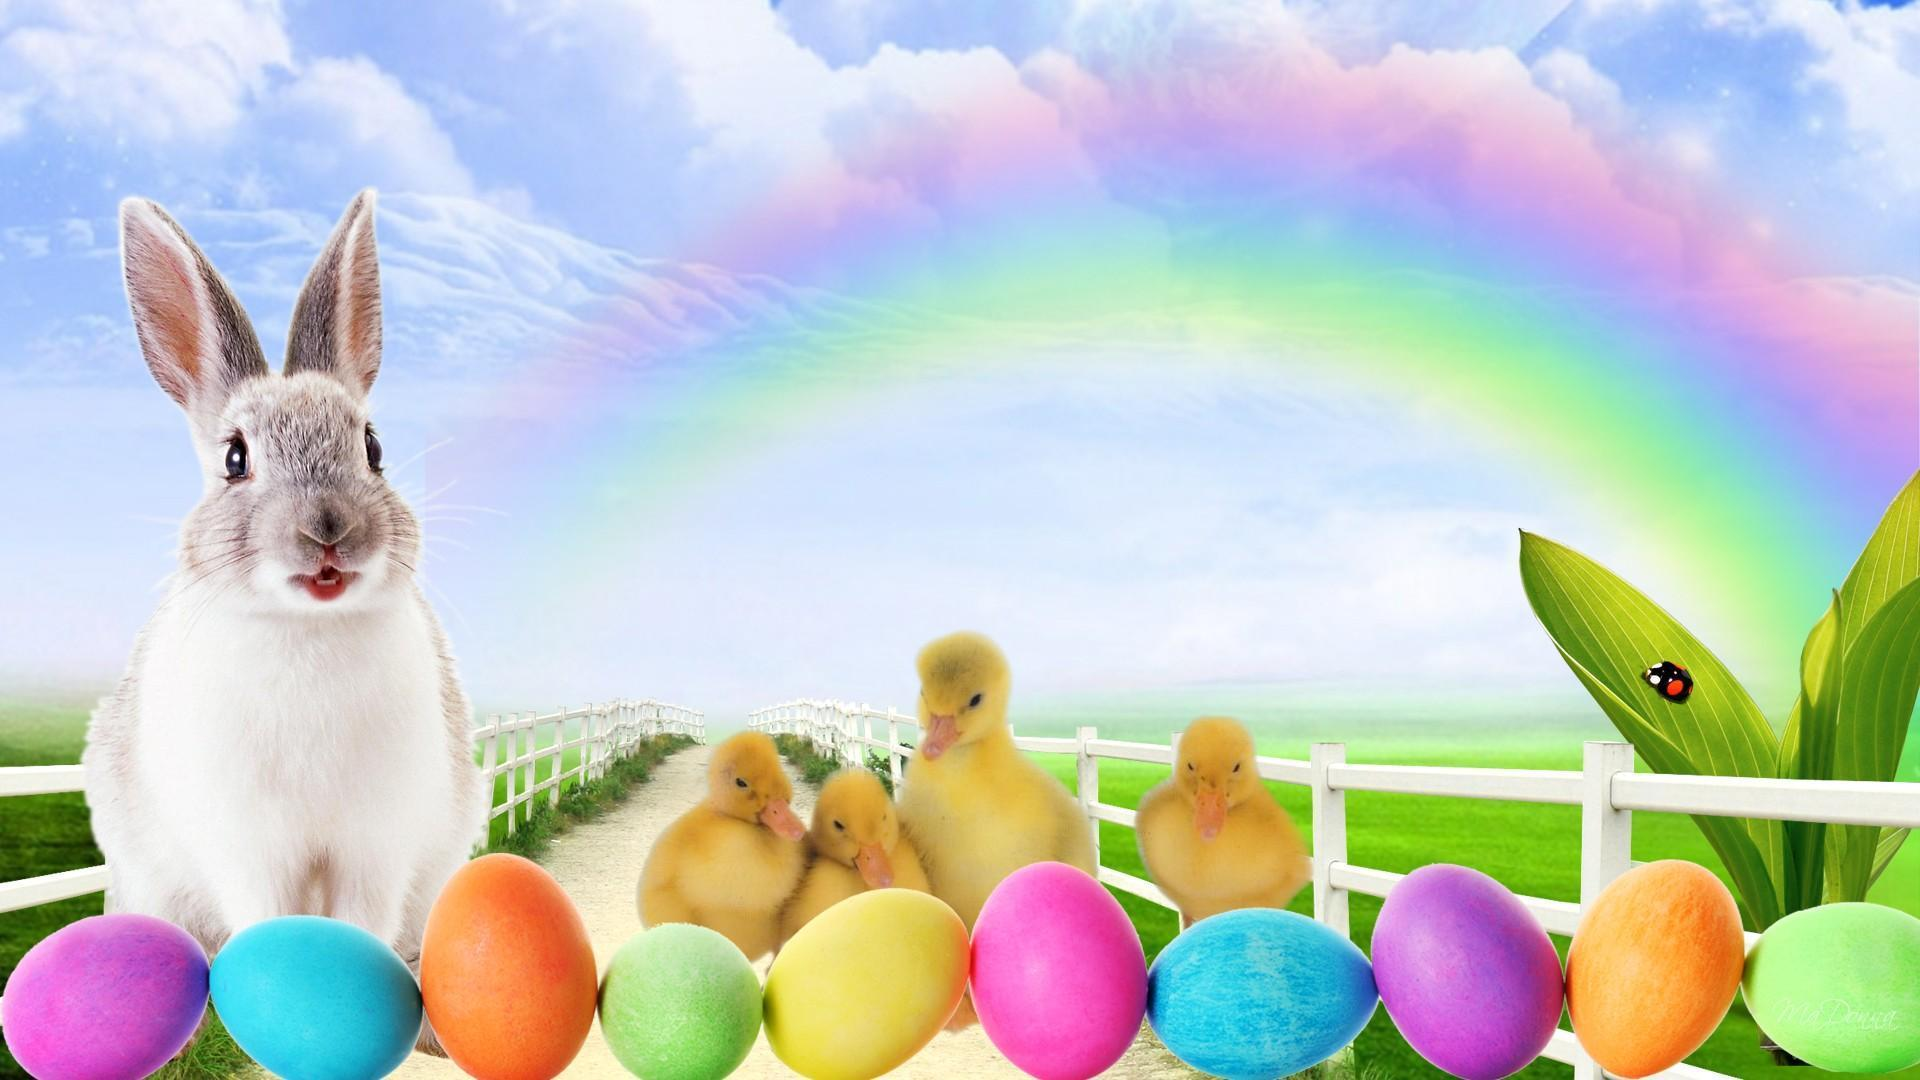 easter wallpapers hd - photo #48